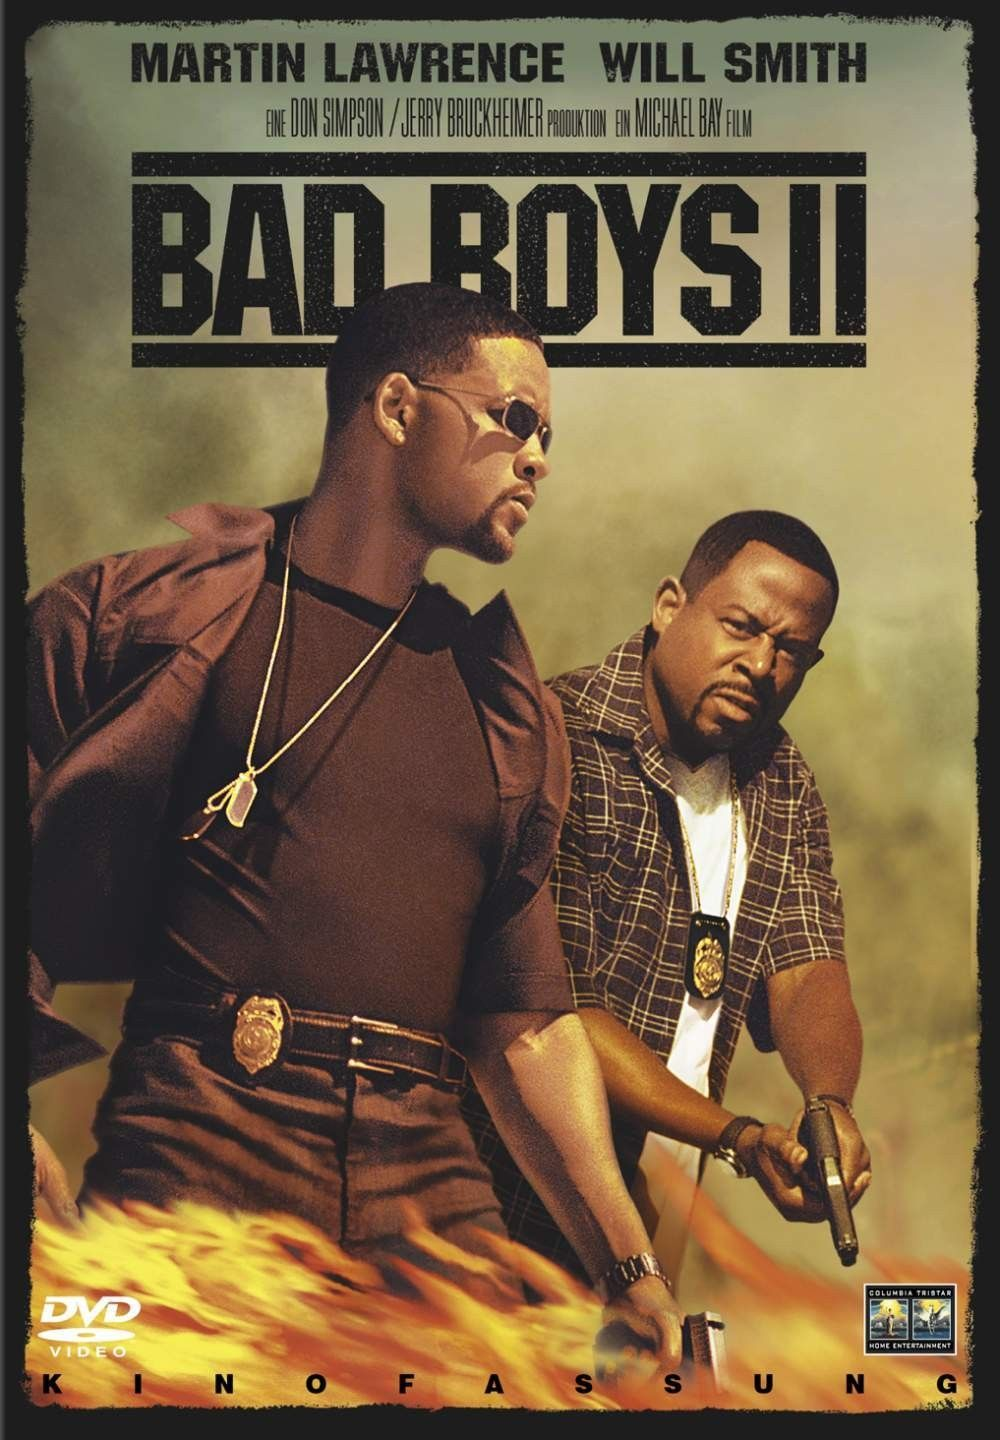 pin by andrew jex on movie posters to copy bad boys movie movies rh pinterest com